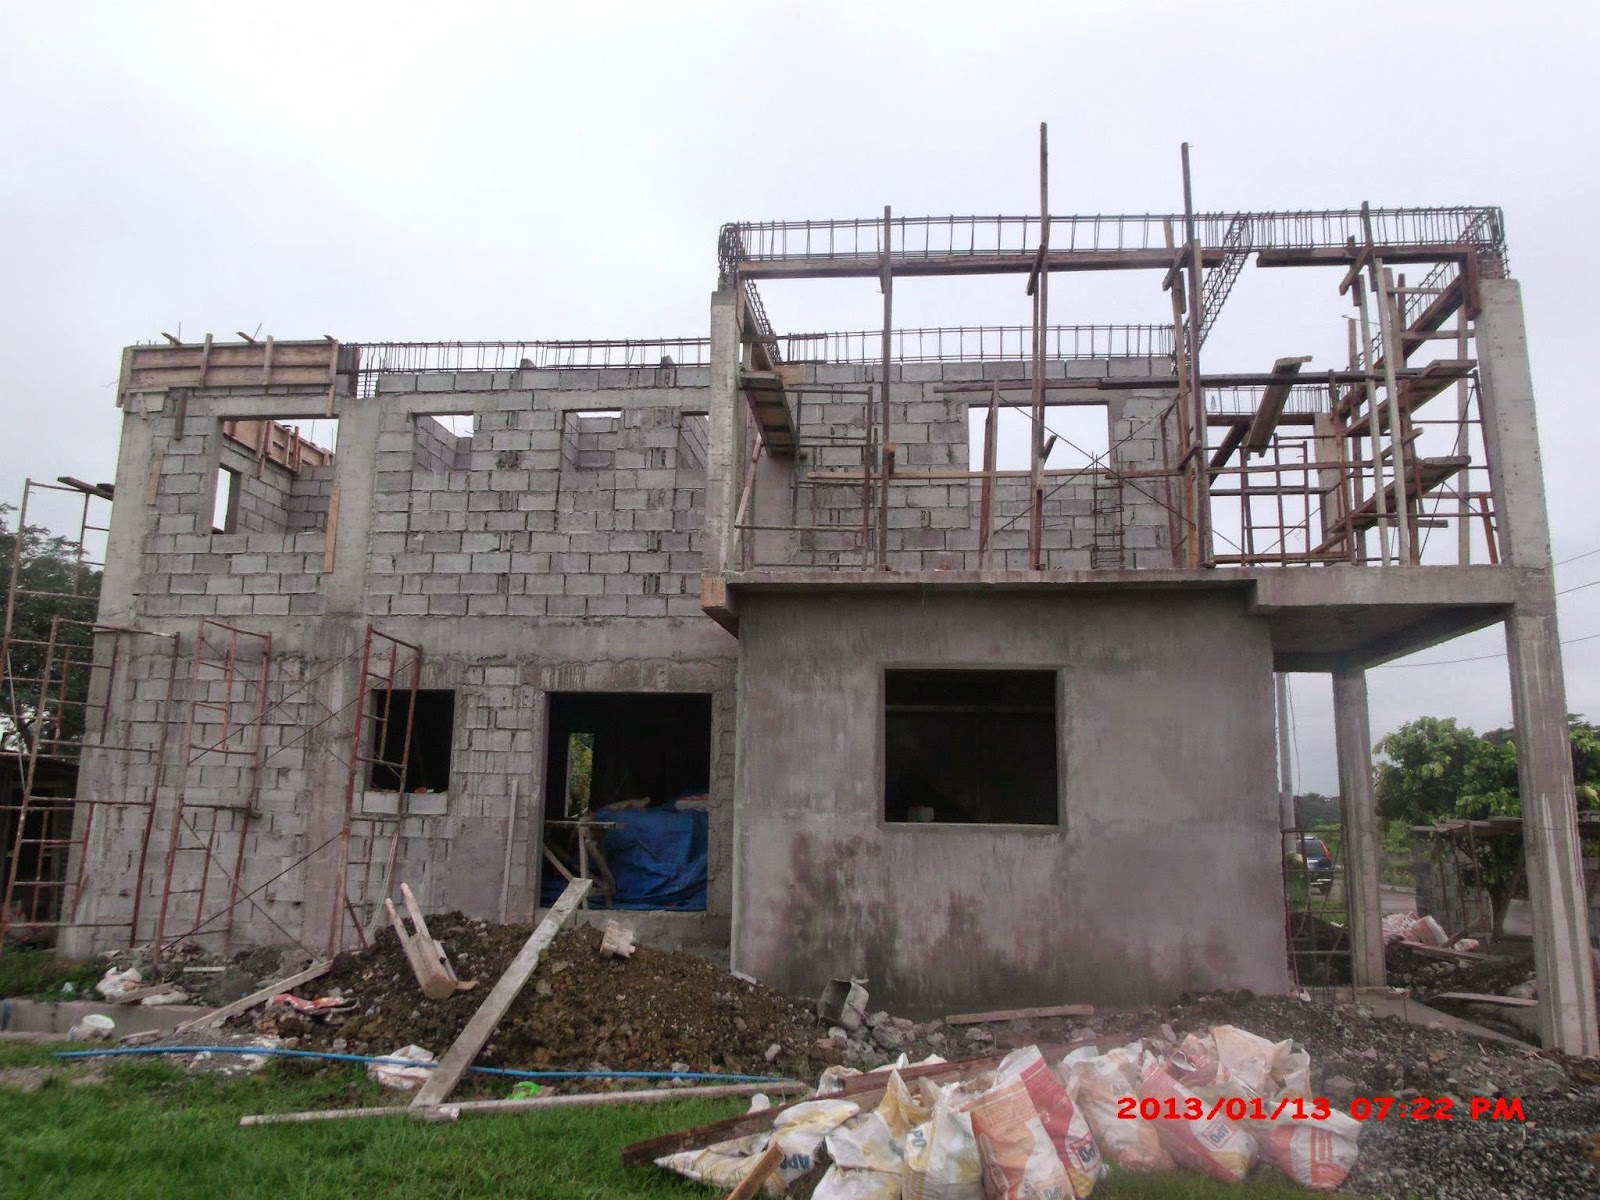 Modern contemporary house designs philippines iloilo simple 2 storey - 72 Small Houses Designs In The Philippines Iloilo